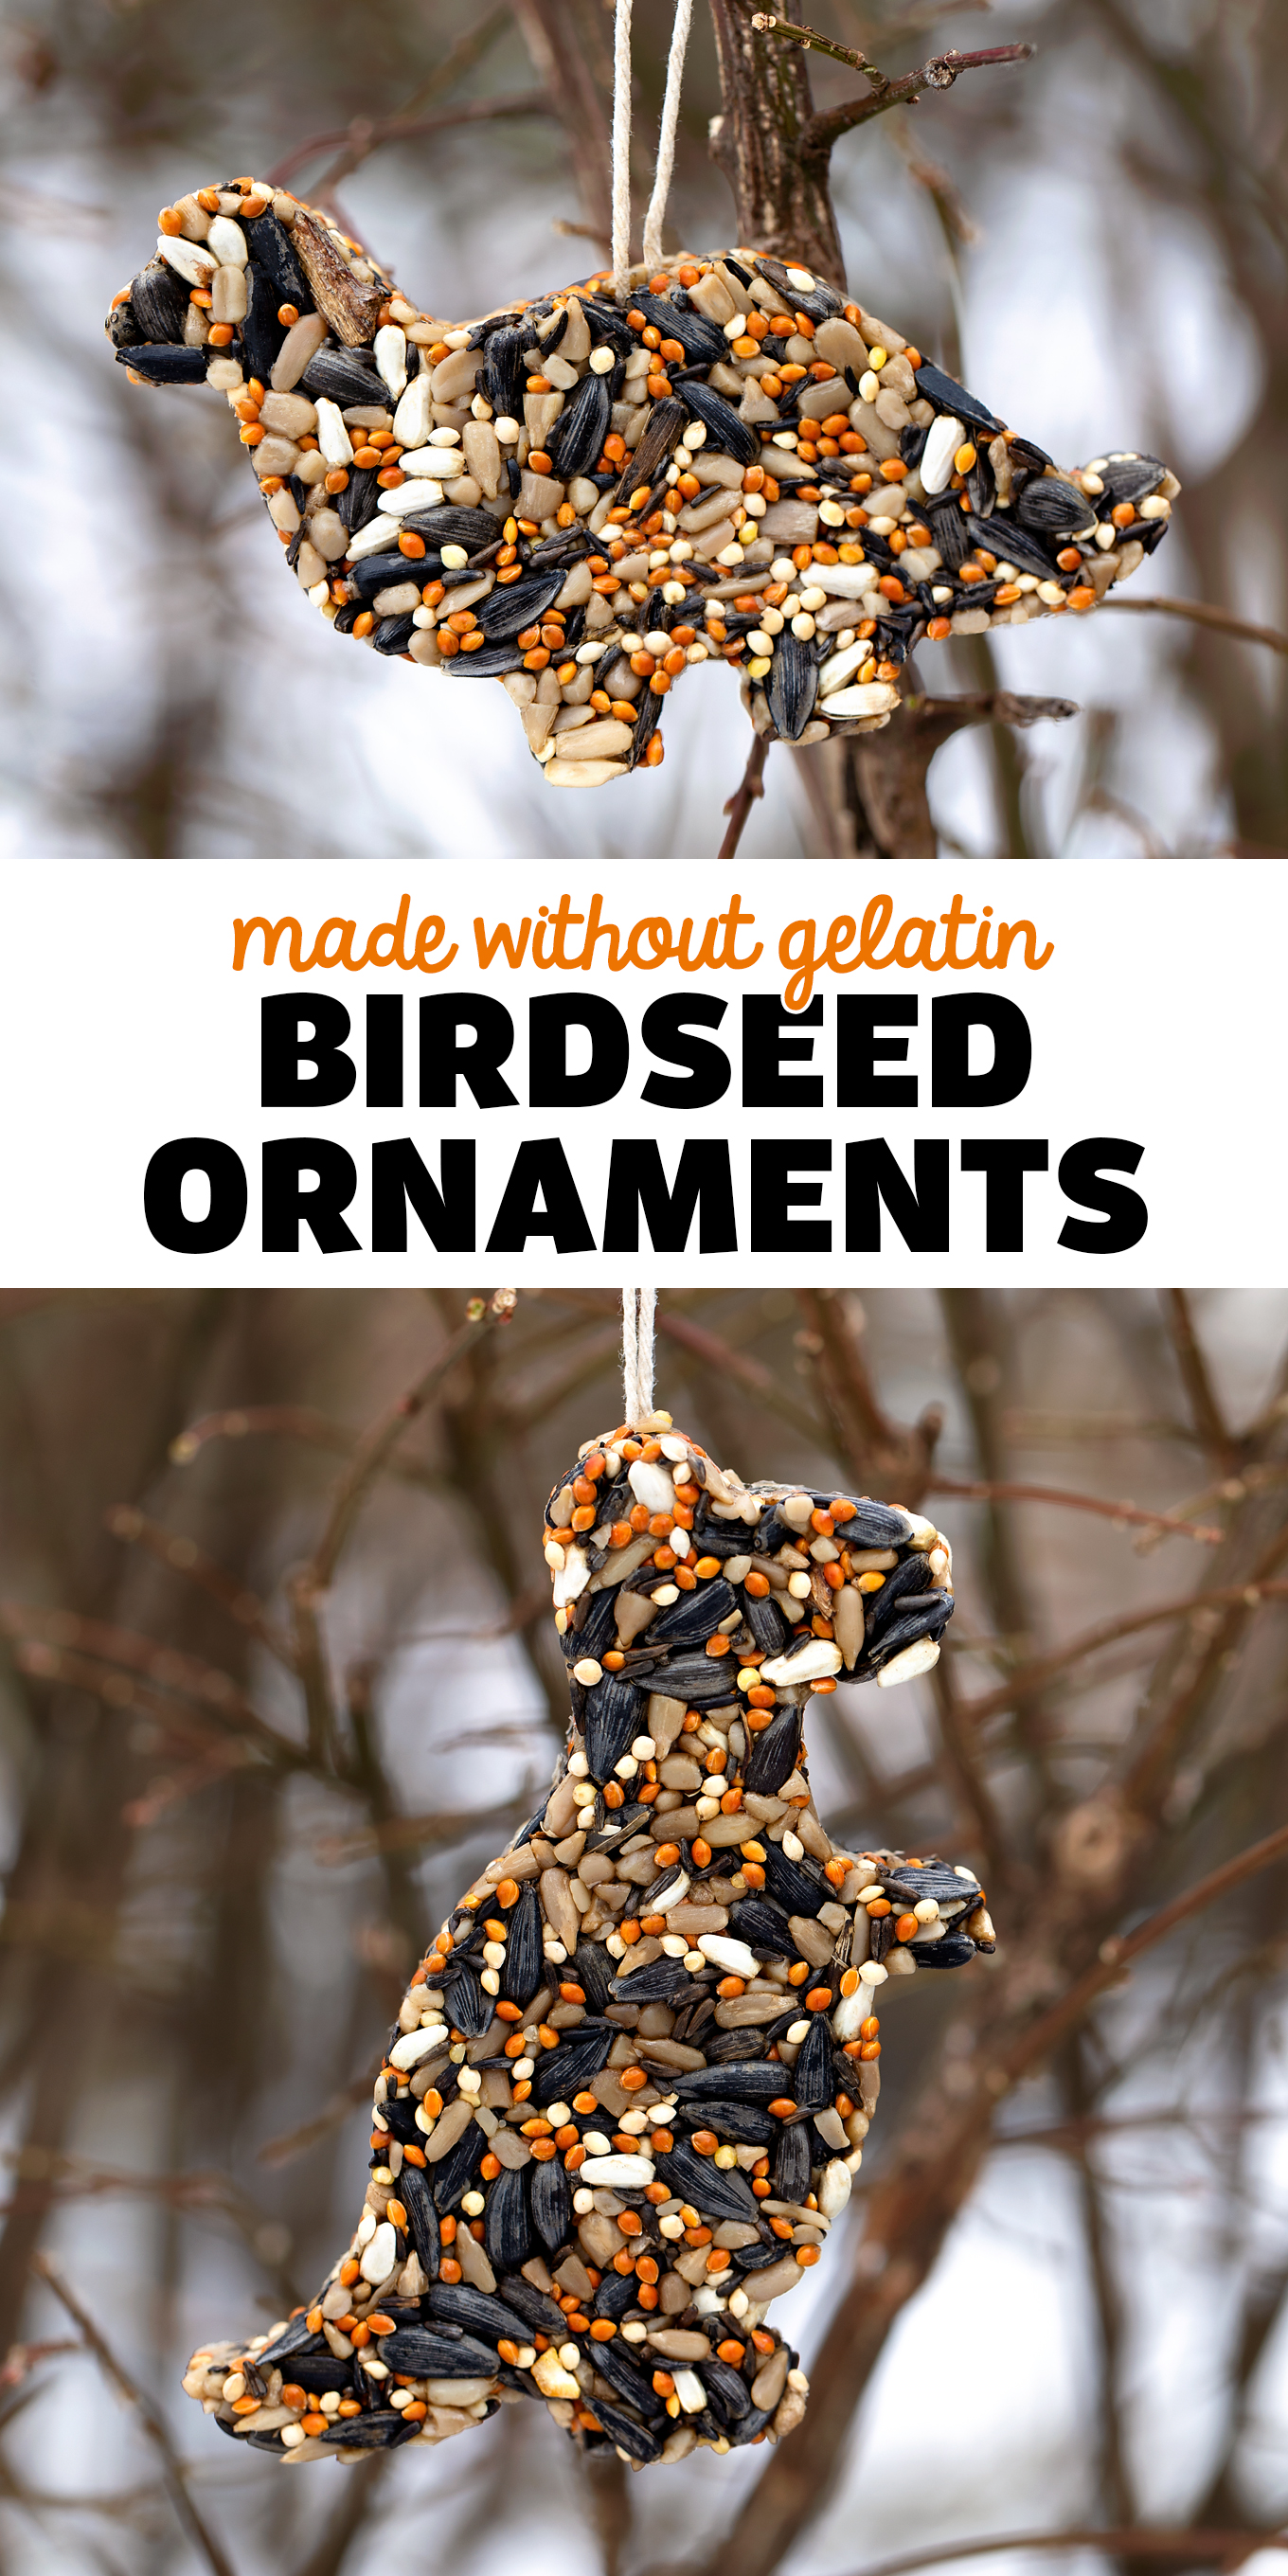 Birdseed Ornaments Made Without Gelatin - An easy and fun vegan recipe for birdseed ornaments! Follow along with Fireflies and Mud Pies for more great ideas! via @firefliesandmudpies